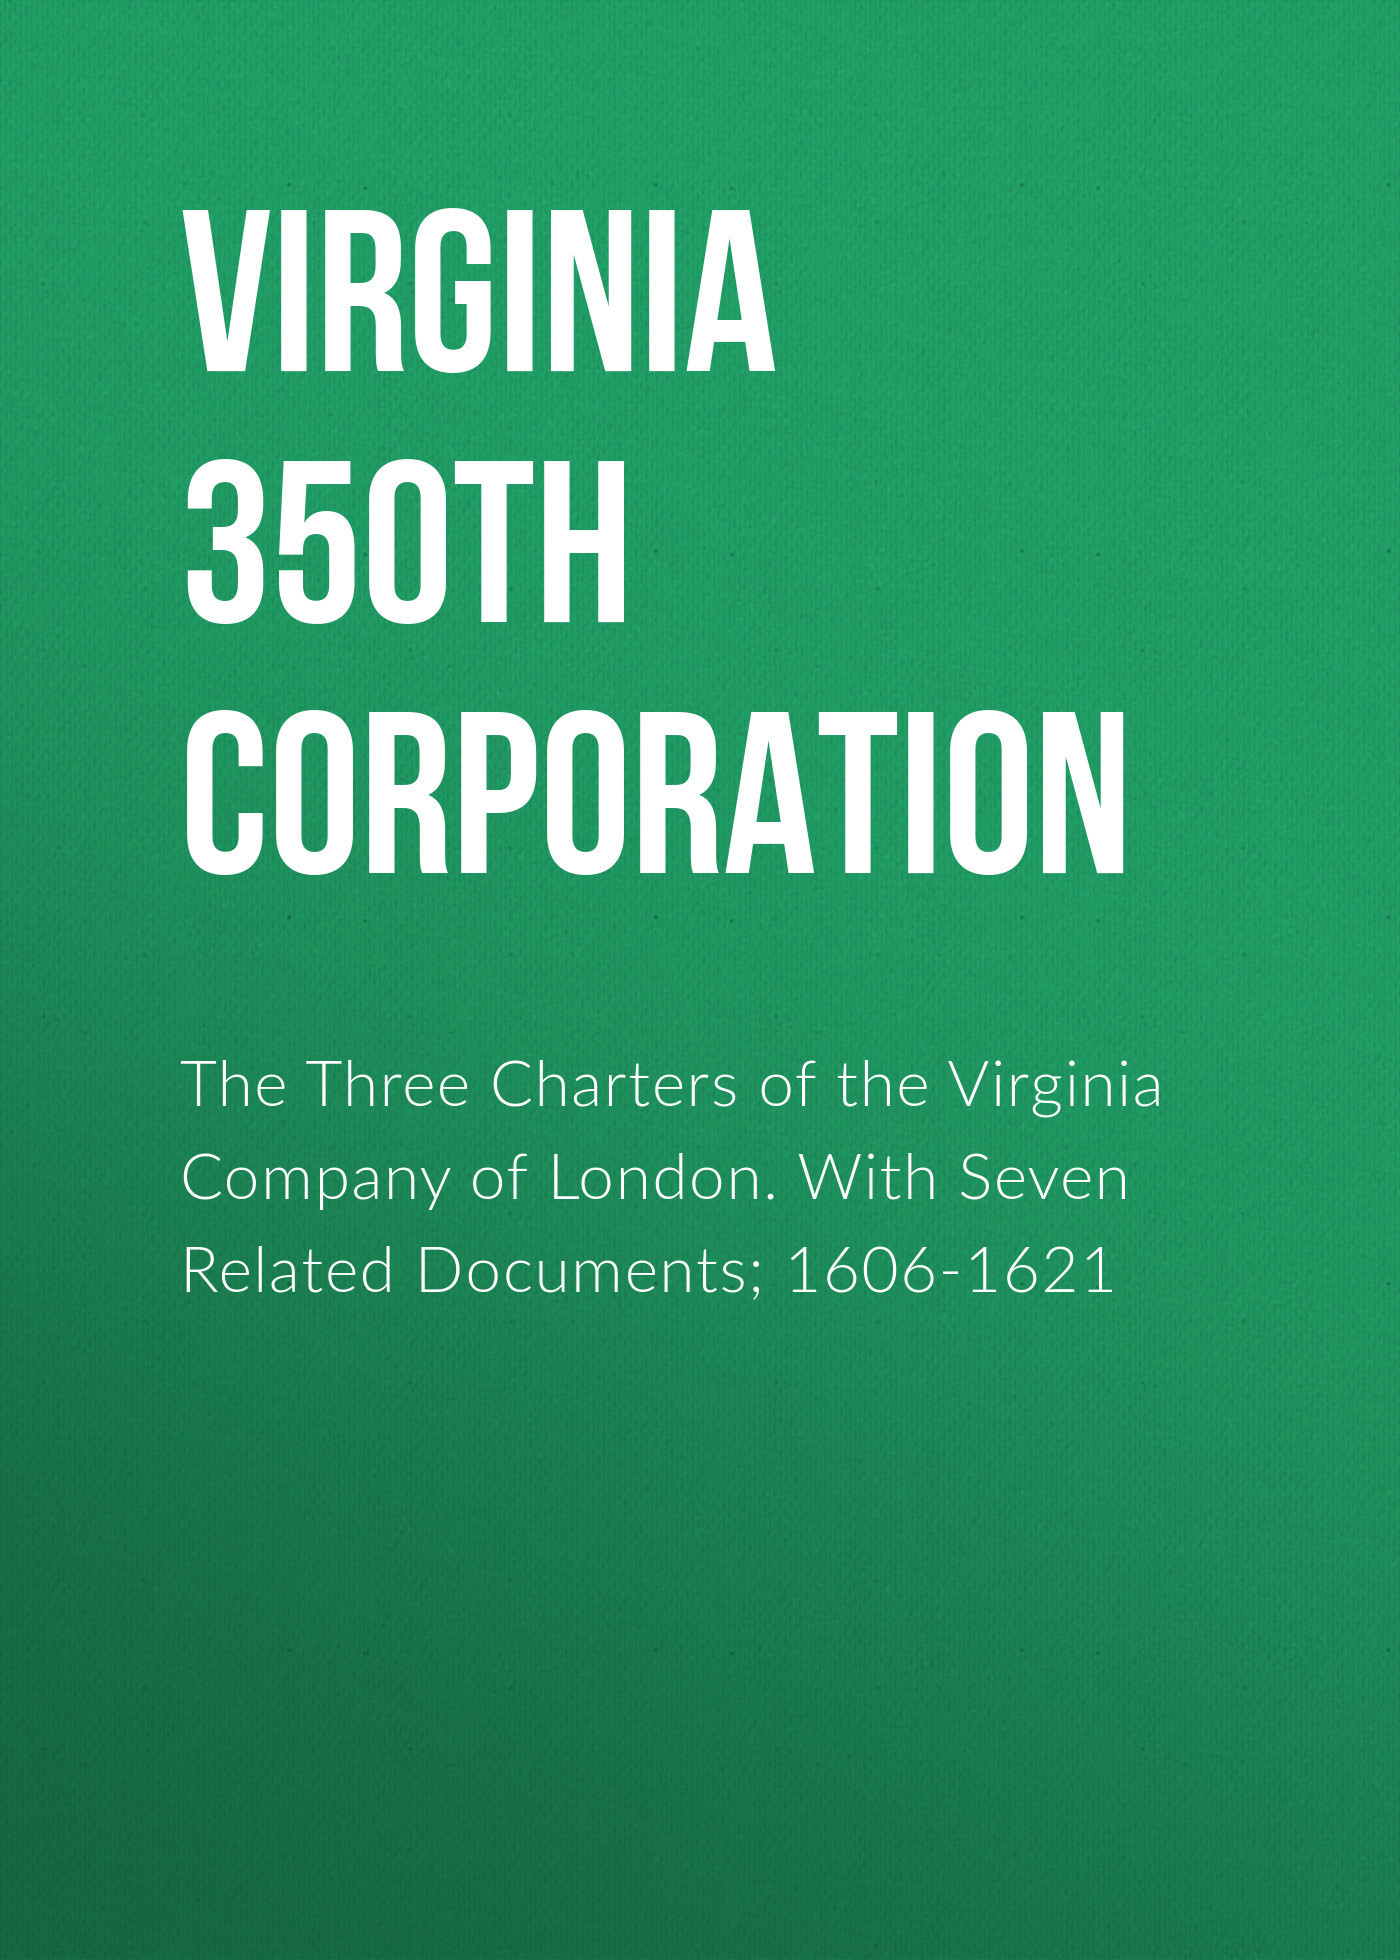 Virginia 350th Anniversary Celebration Corporation The Three Charters of the Virginia Company of London. With Seven Related Documents; 1606-1621 the destruction of tilted arc – documents